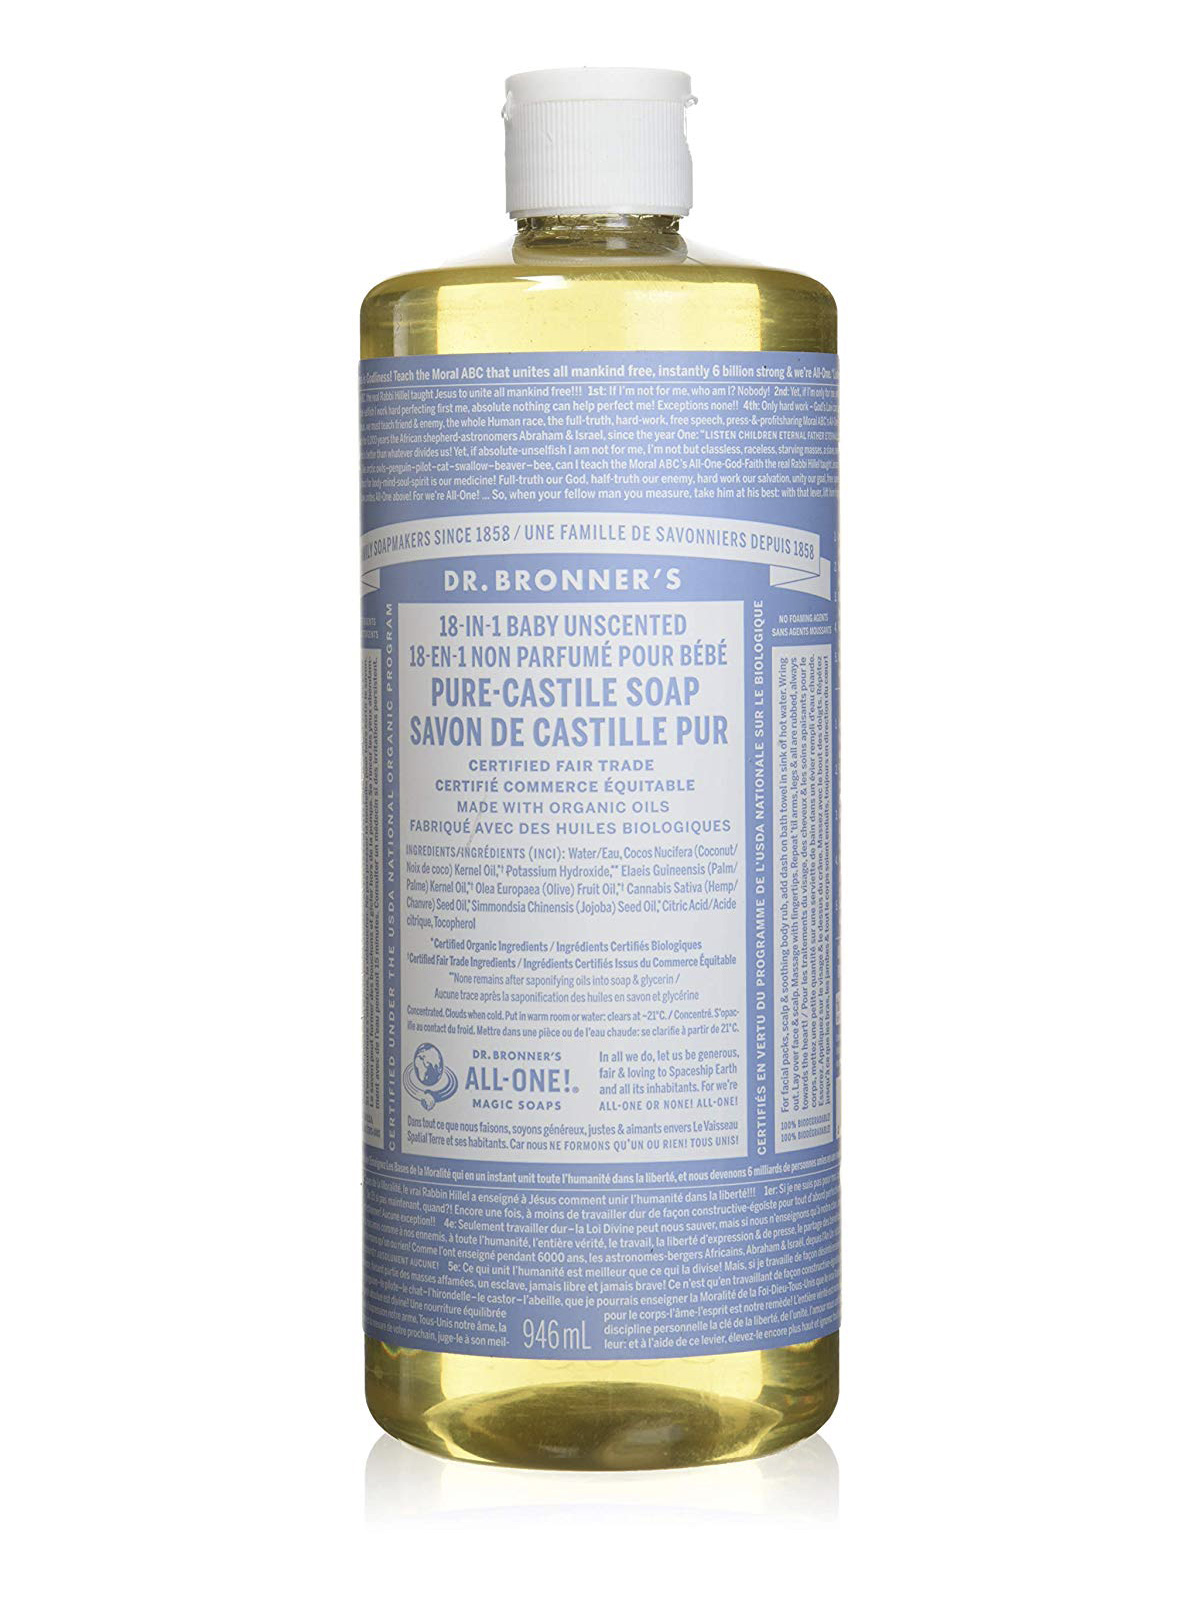 Best Cleaning Products, Dr. Bronner's Castile Soap